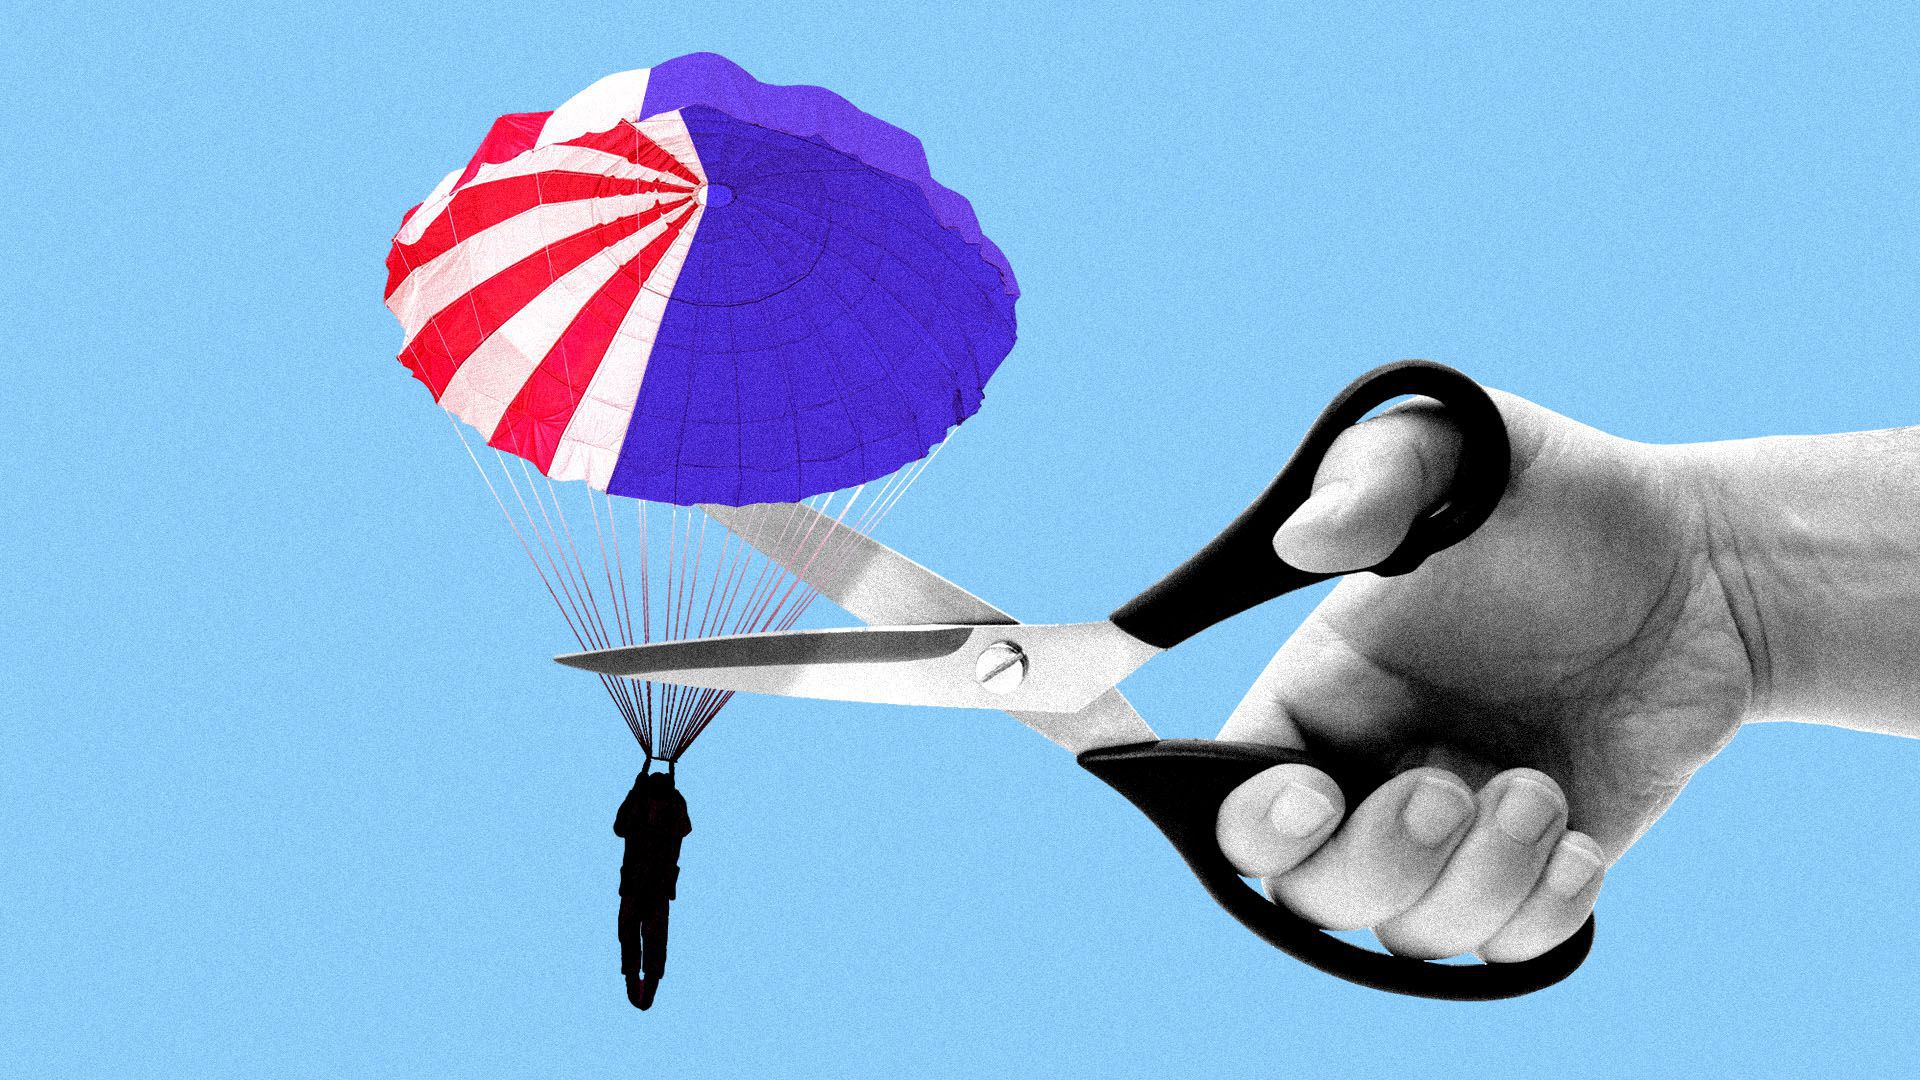 Illustration of scissors snipping a man with a parachute